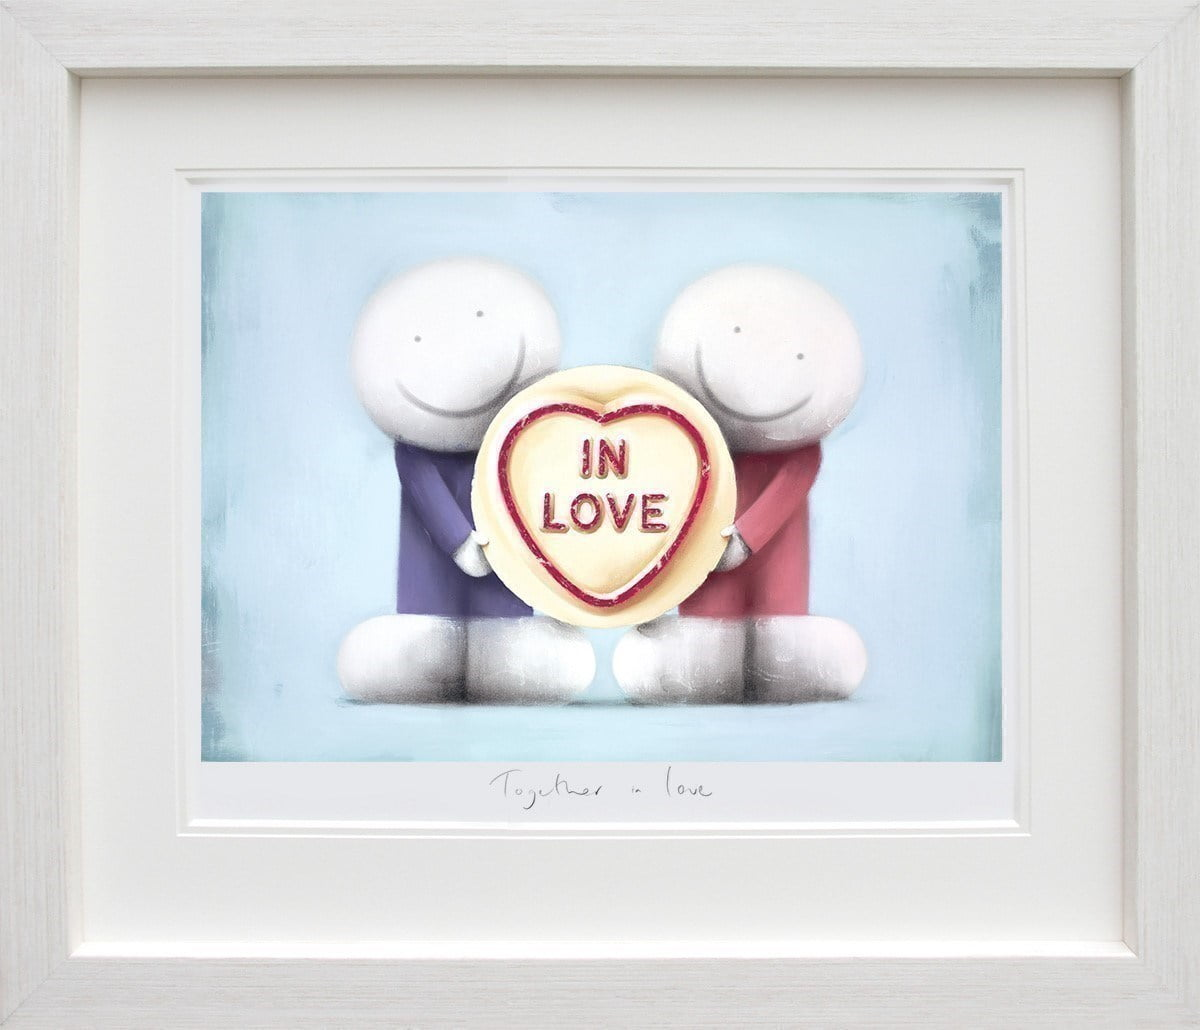 Together in Love ~ Doug Hyde